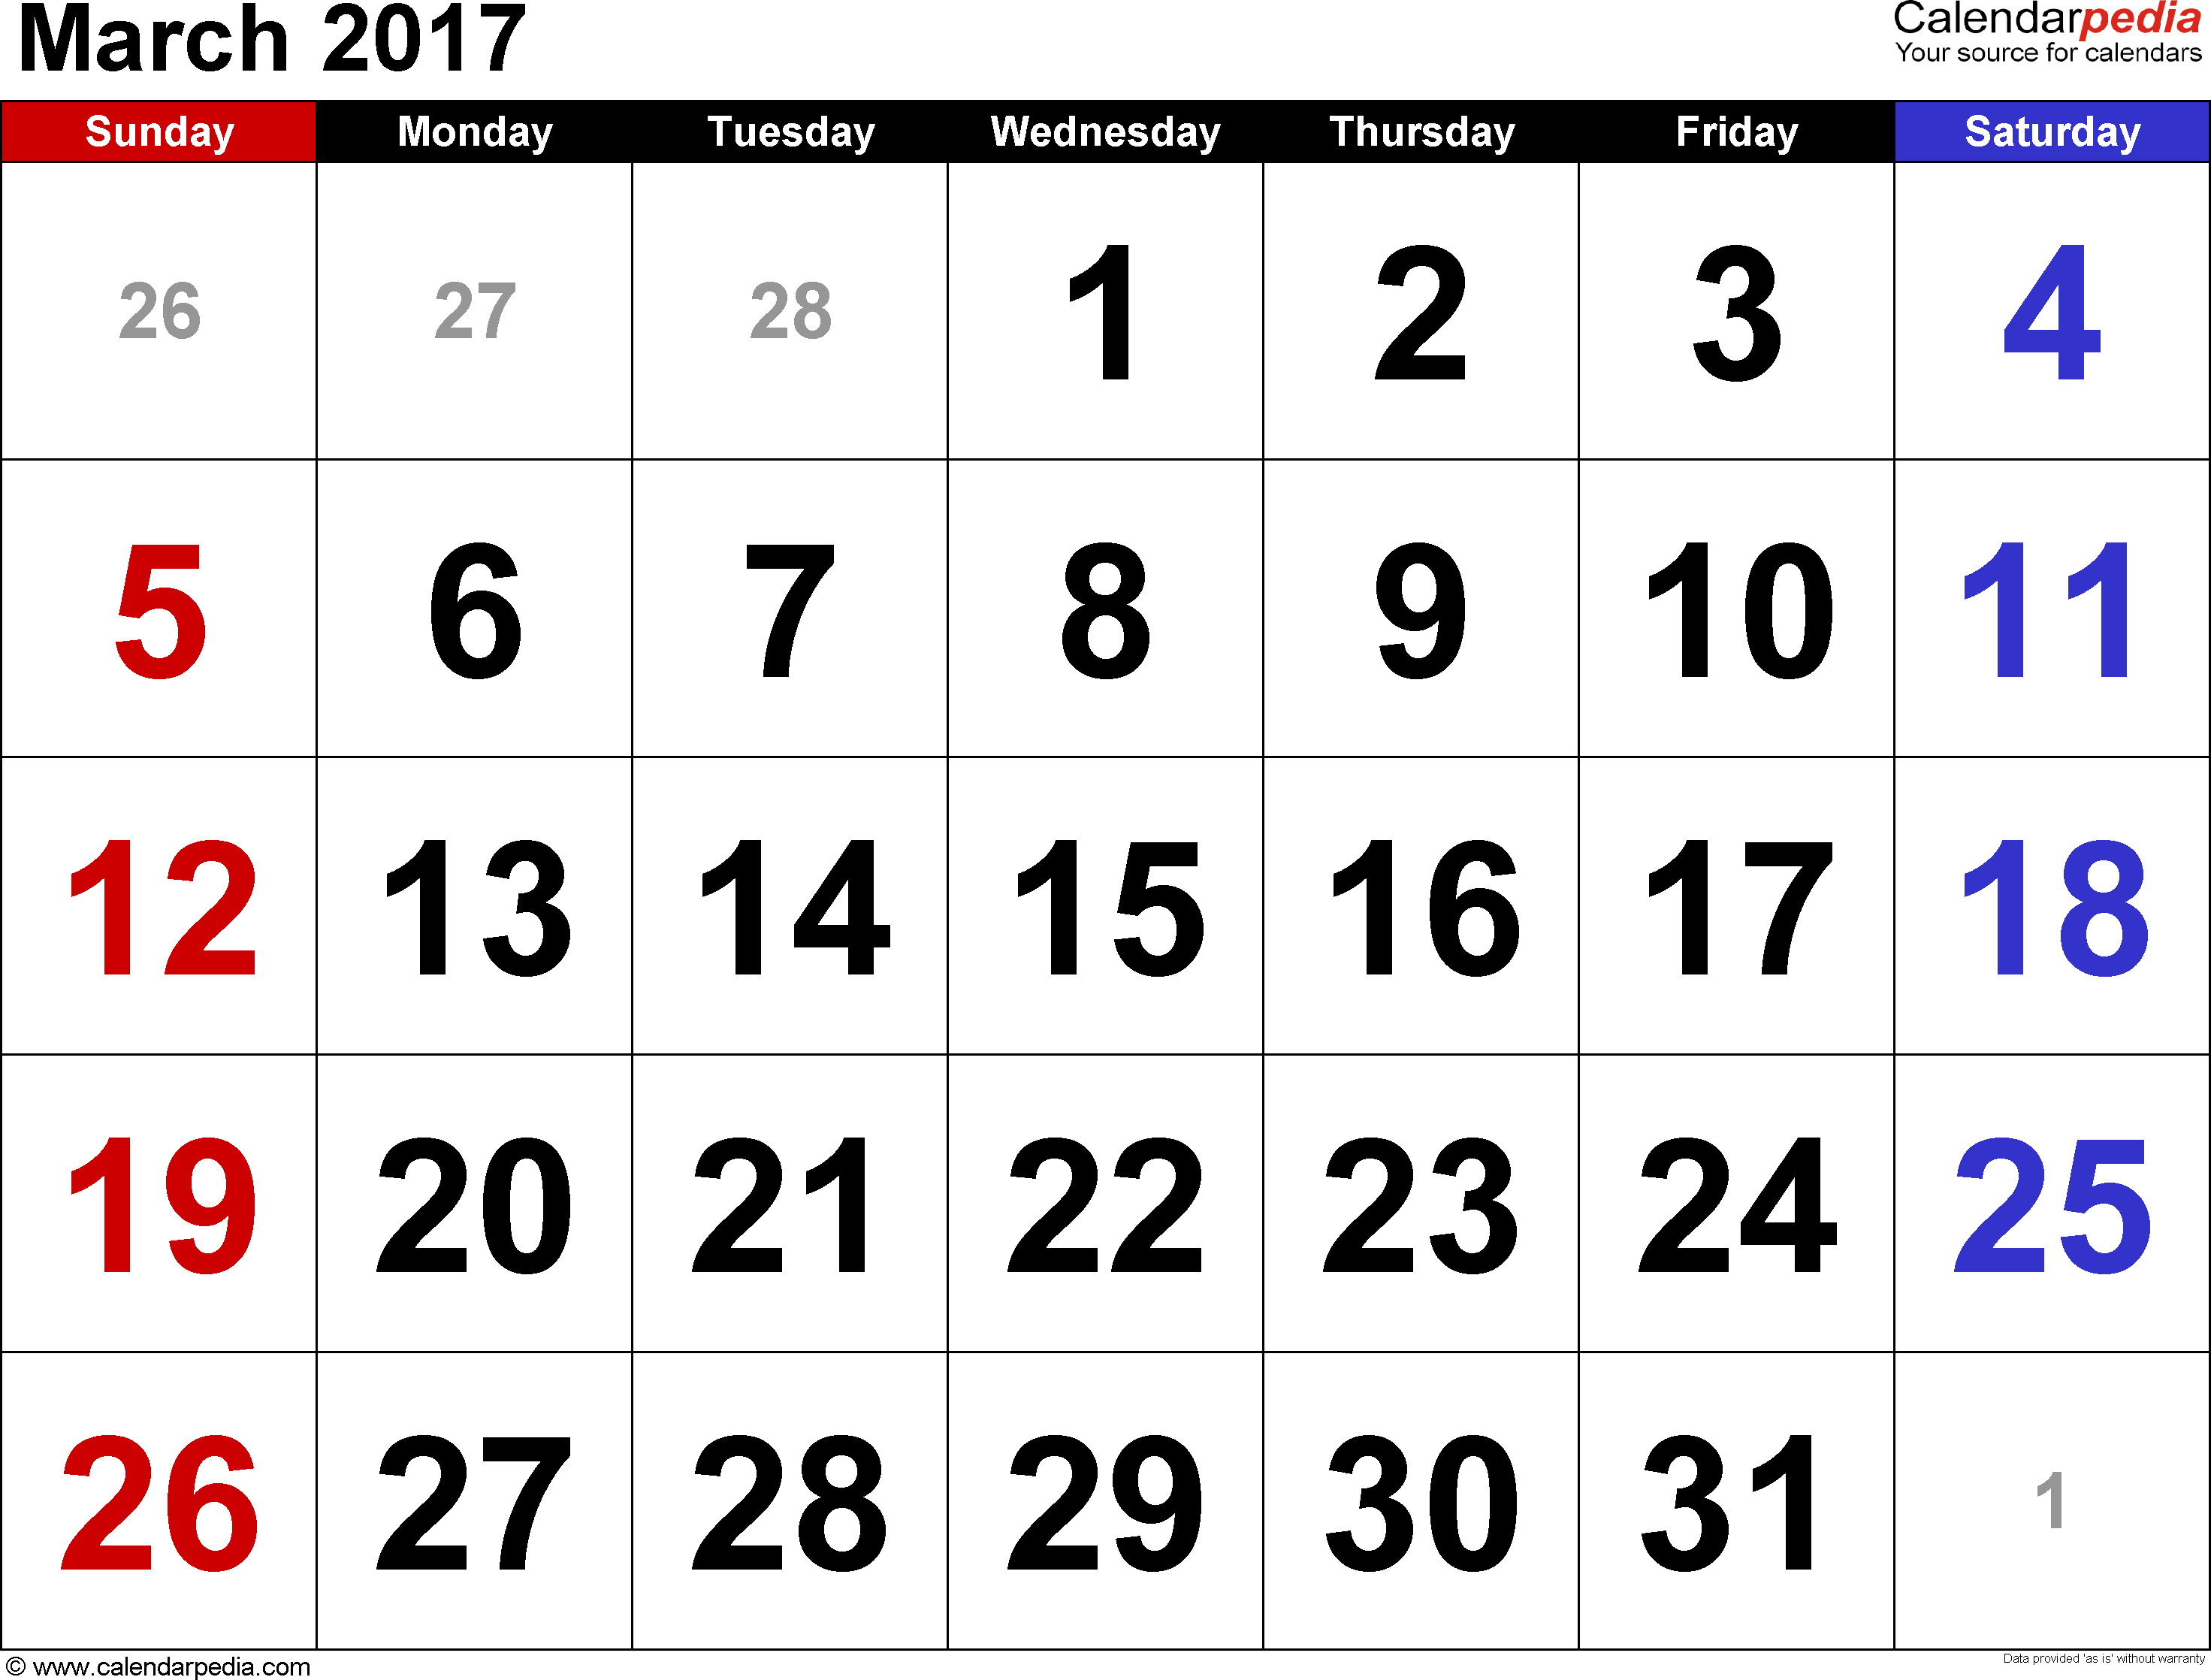 March 2017 Calendars for Word, Excel & PDF